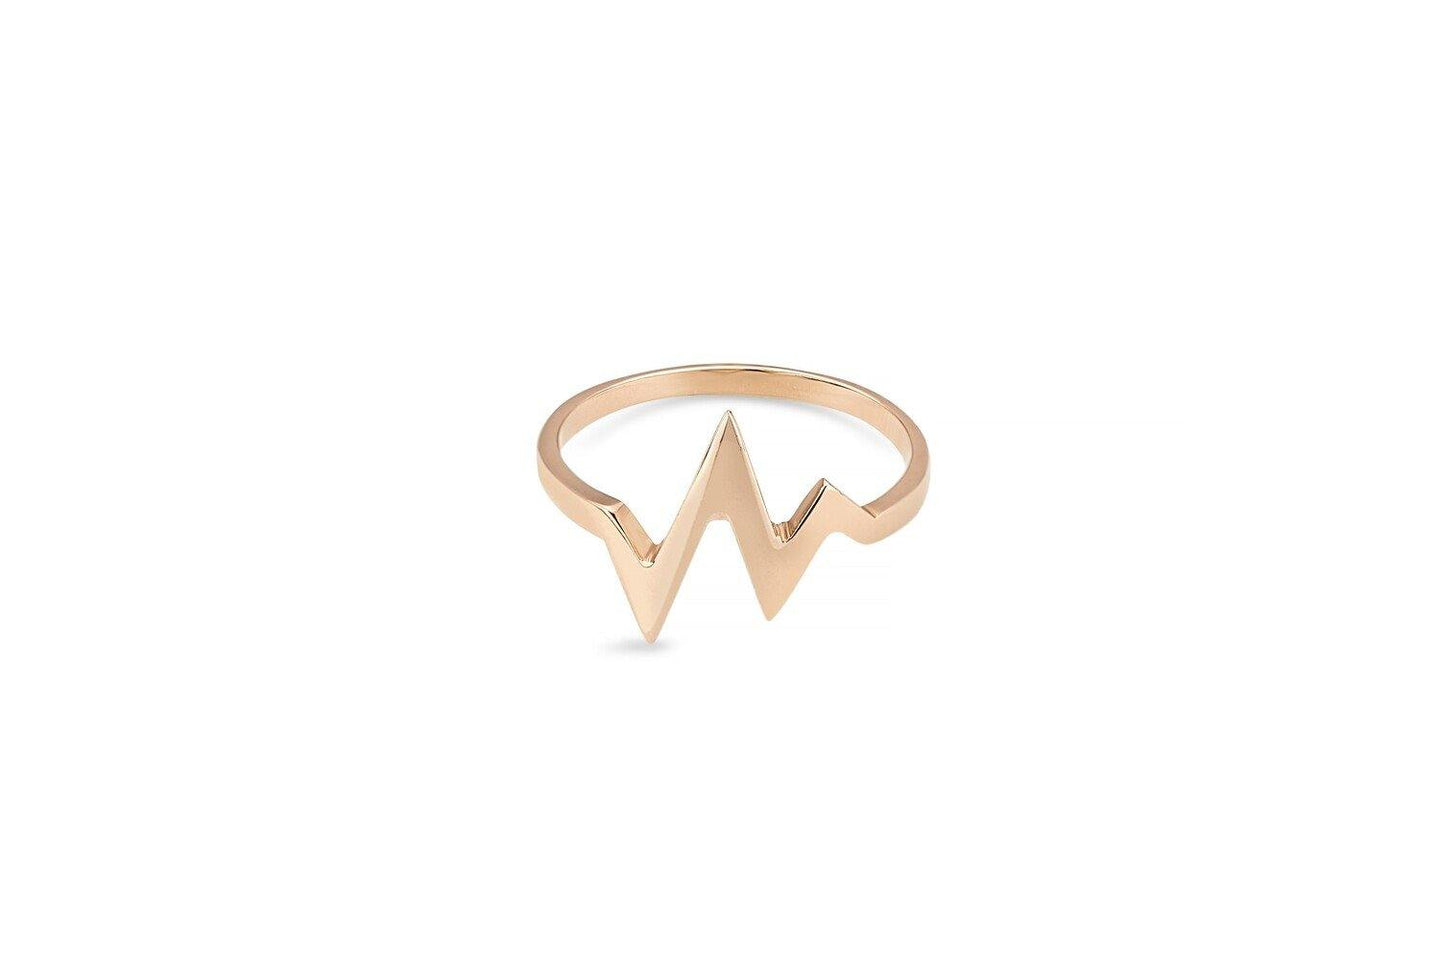 9ct Rose Gold HeartBeat Ring